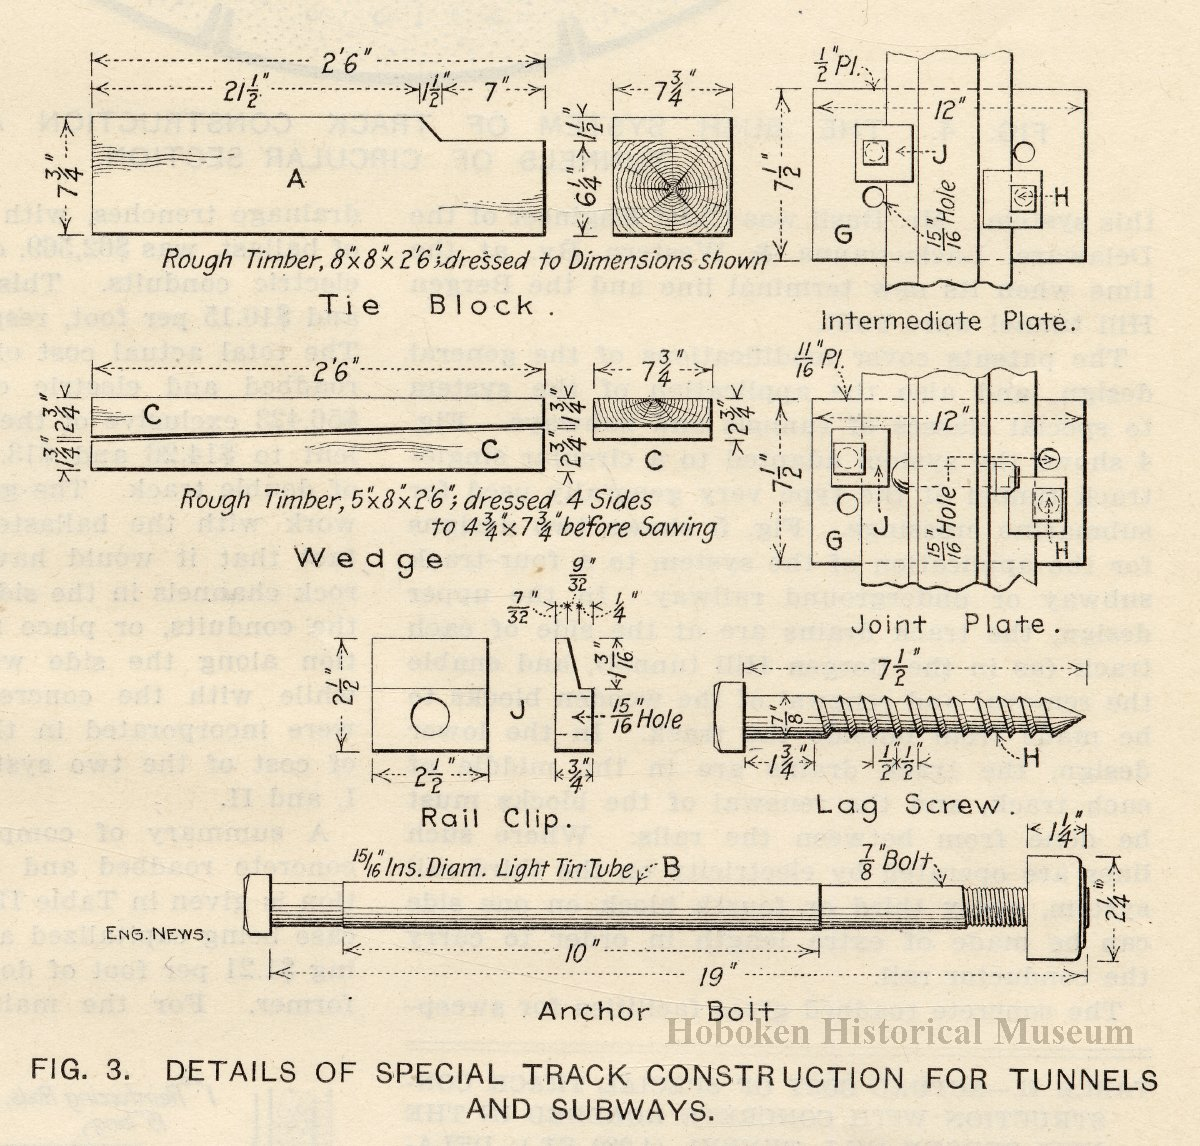 Article Bergen Tunnel A Special Type Of Track Construction For Subway Wiring Schematic Tunnels Subways Engineering News Aug 19 1909